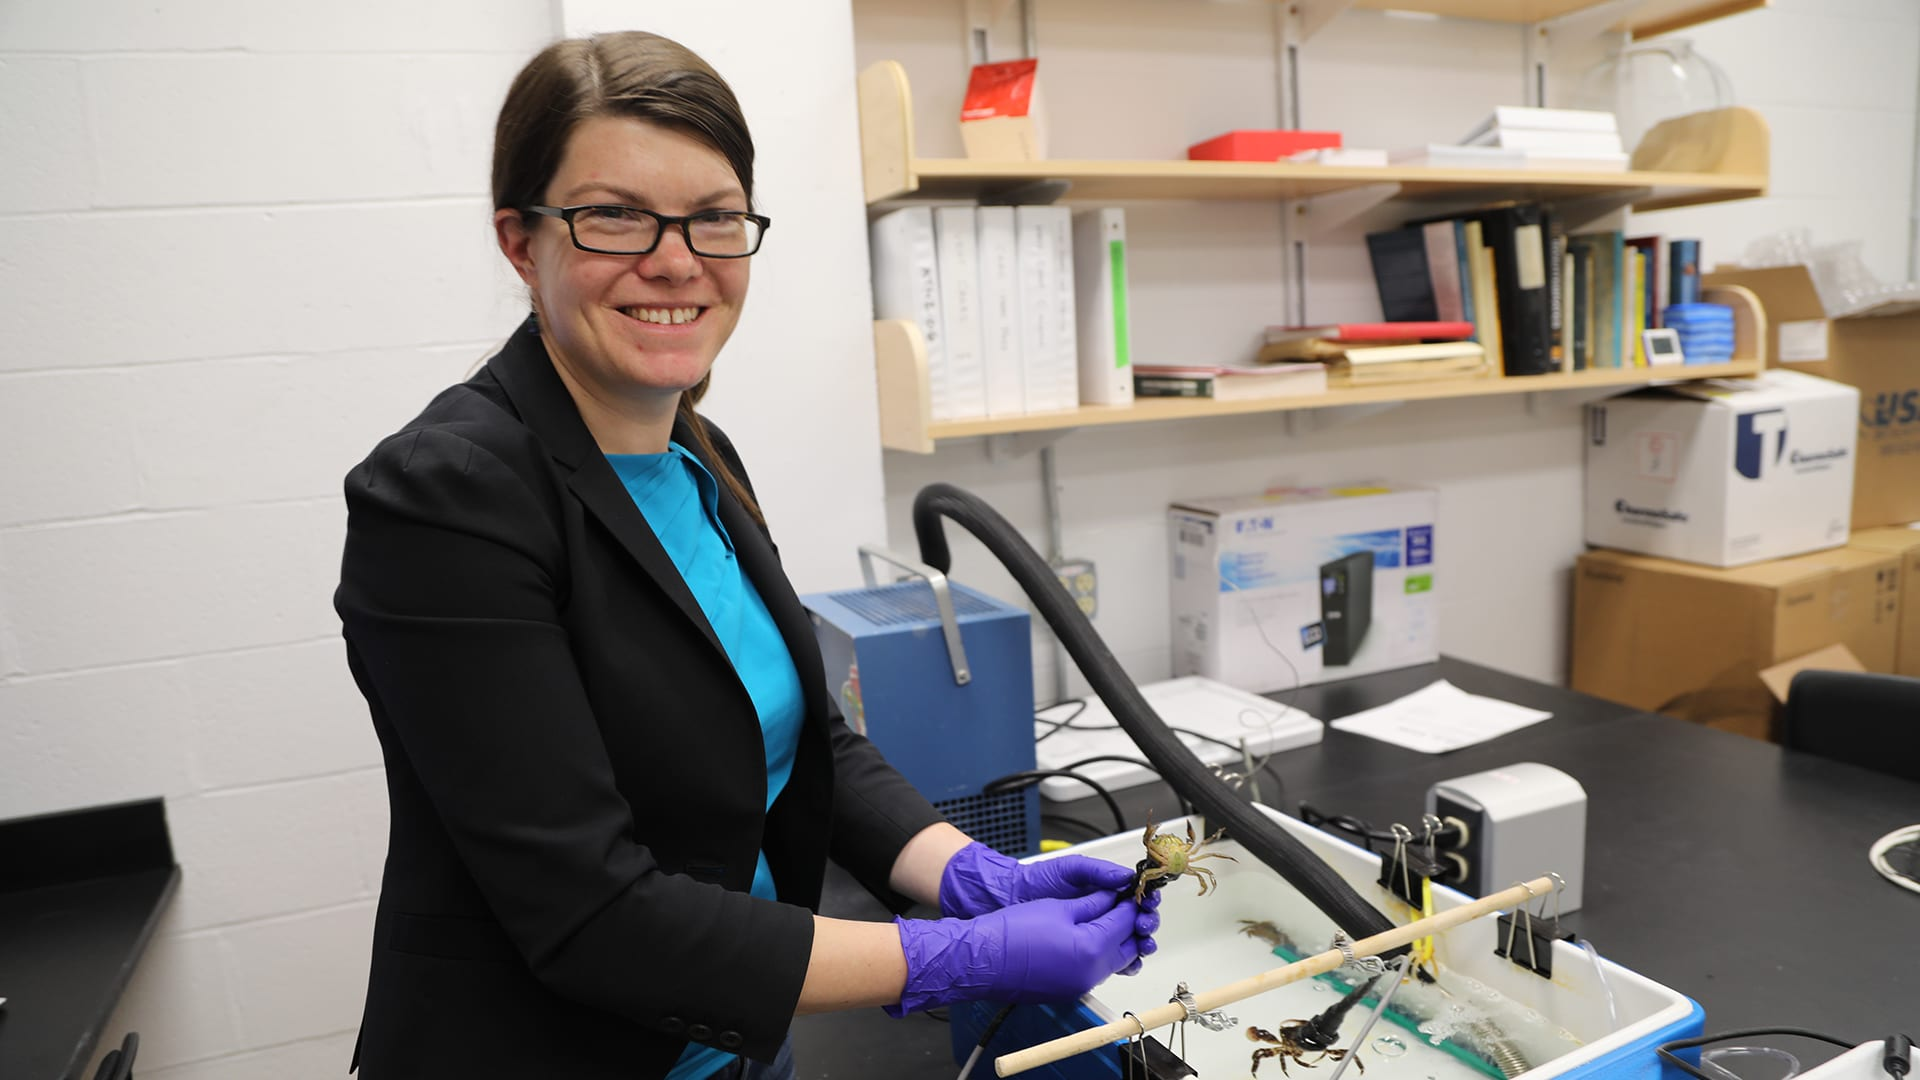 WHOI scientist Carolyn Tepolt in her lab with one of her favorite study species, the European green crab. Green crabs are one of the world's most successful marine invasive species, and Tepolt says she hopes to uncover genetic variation in these populations that has helped this species flourish in new environments